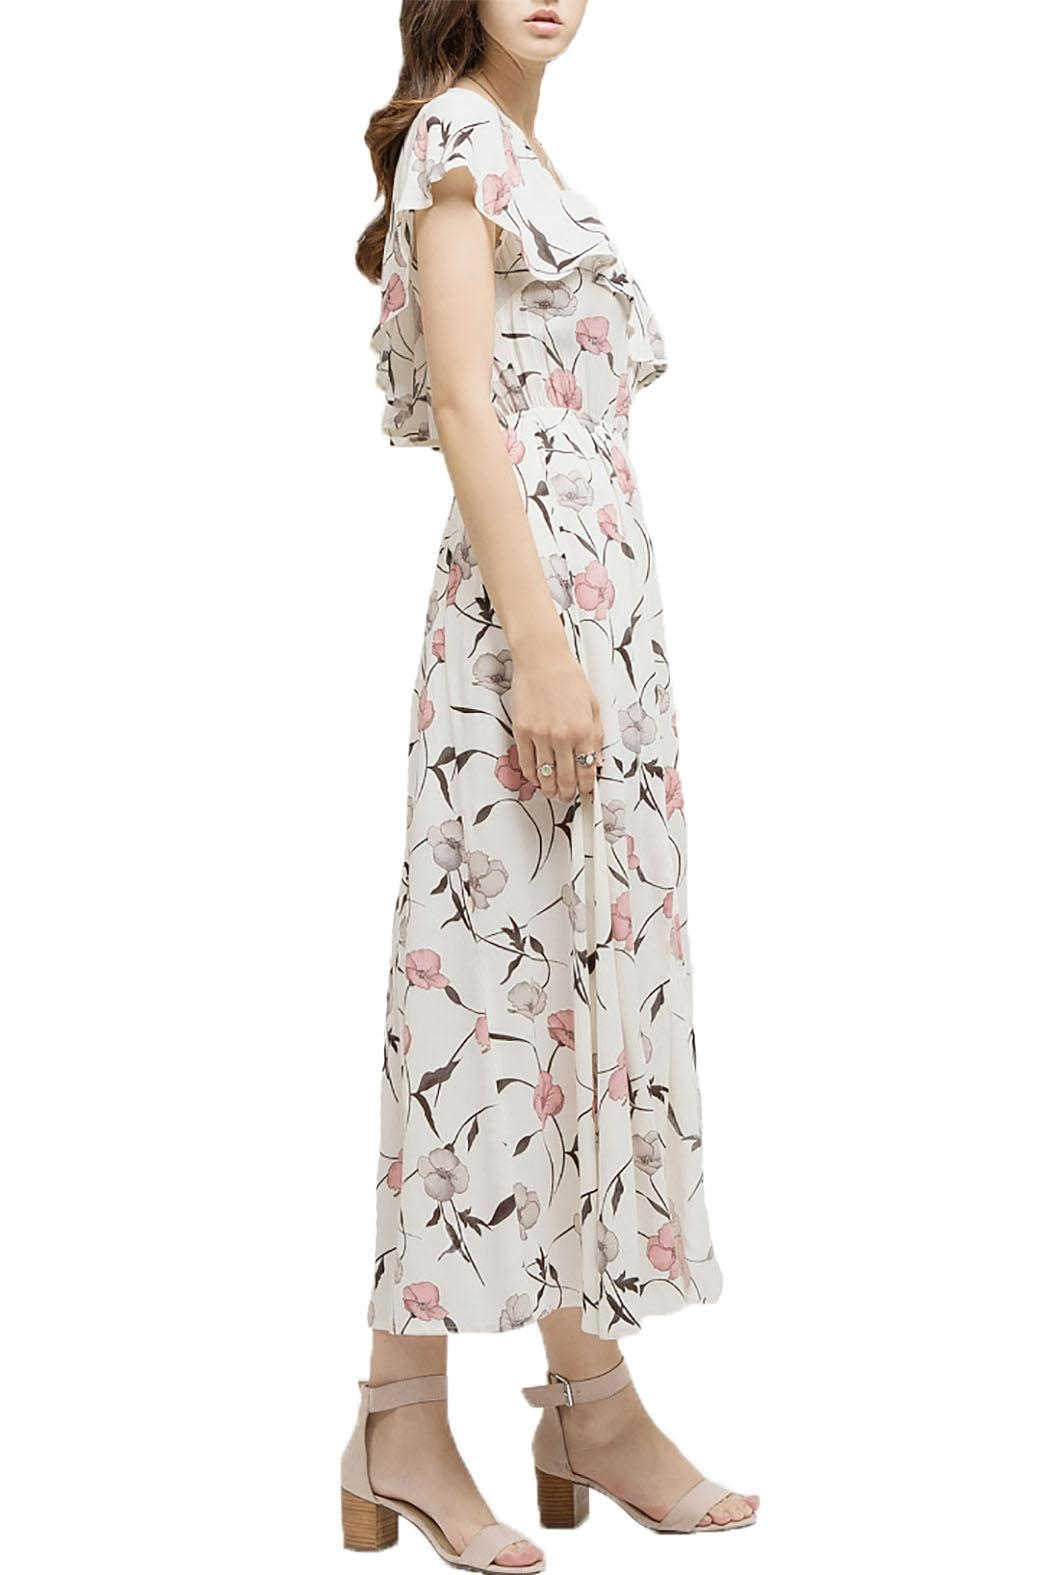 Blu Pepper Floral Ruffled Maxi Dress - Side Cropped Image